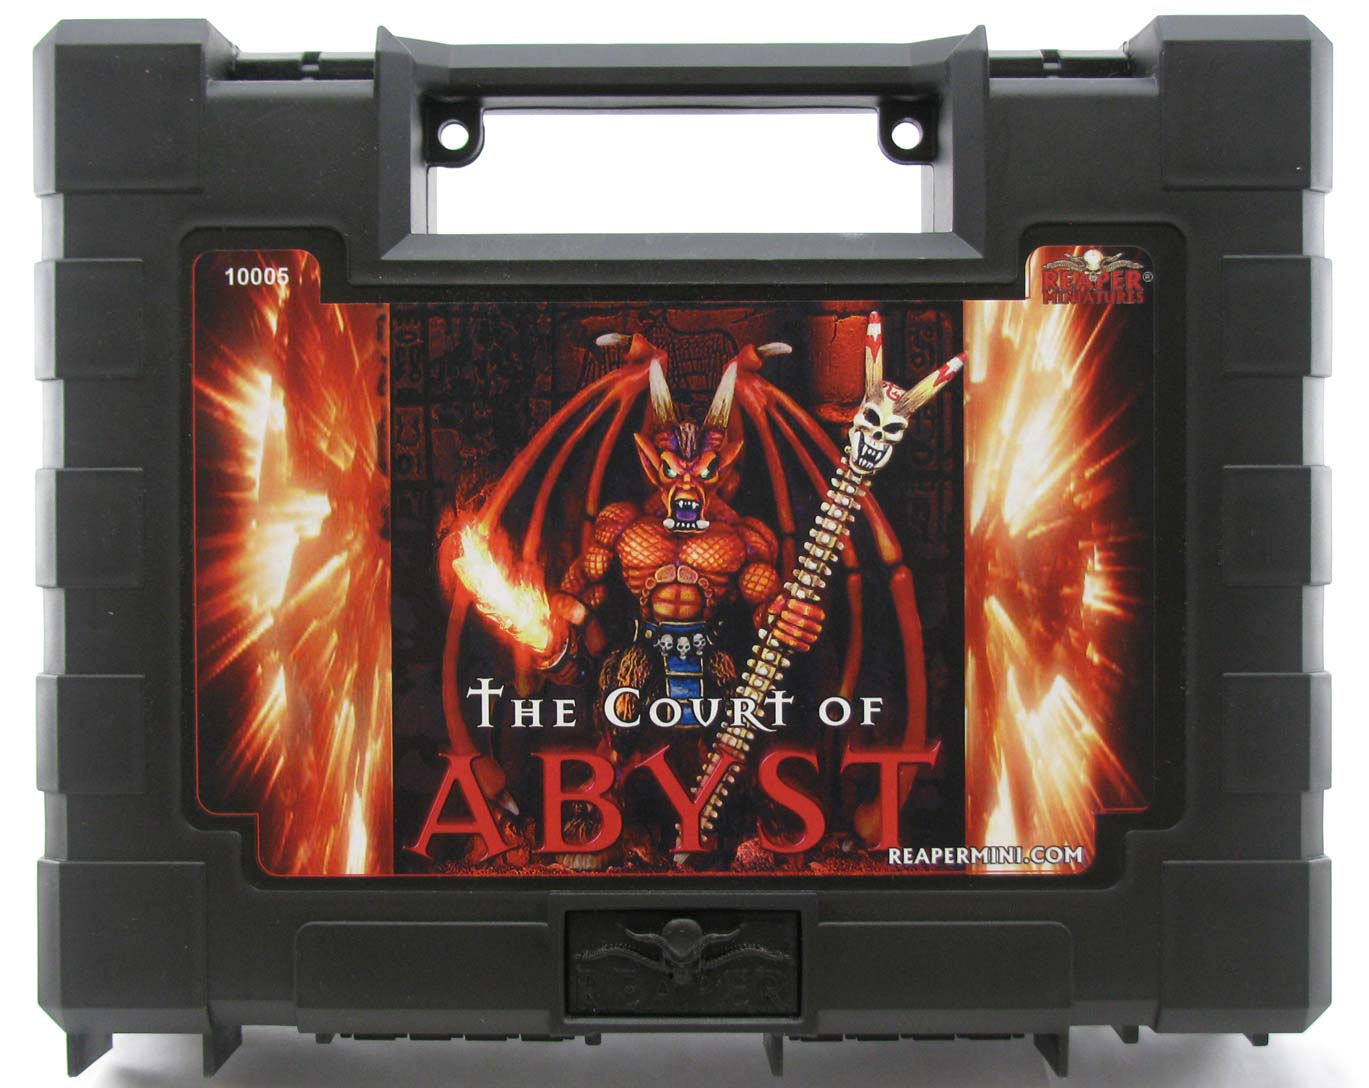 Reaper Miniatures The Court Of Abyst #10005 Boxed Sets Unpainted Metal Figure